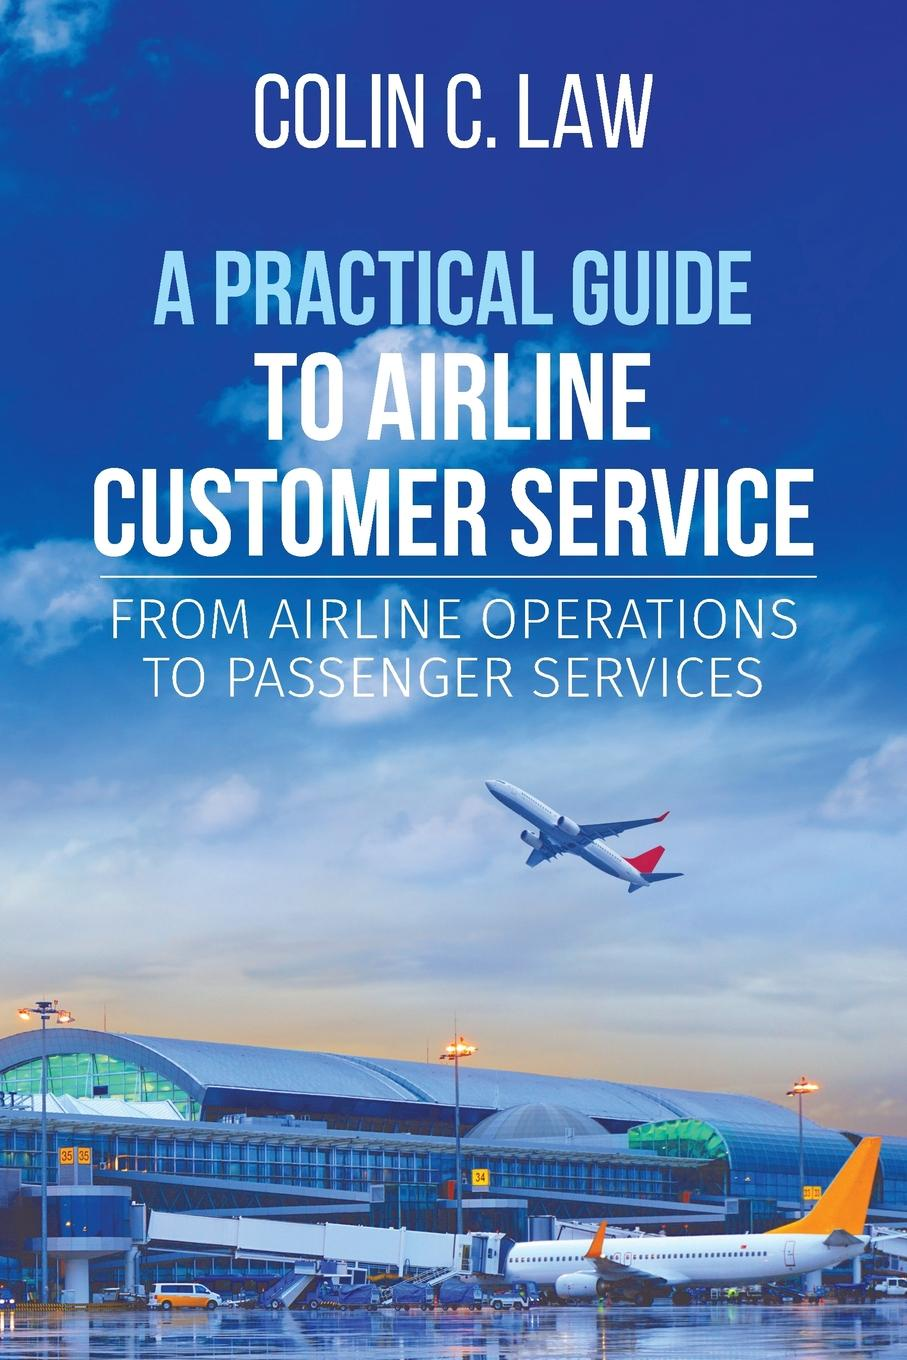 Colin C. Law A Practical Guide to Airline Customer Service. From Airline Operations to Passenger Services